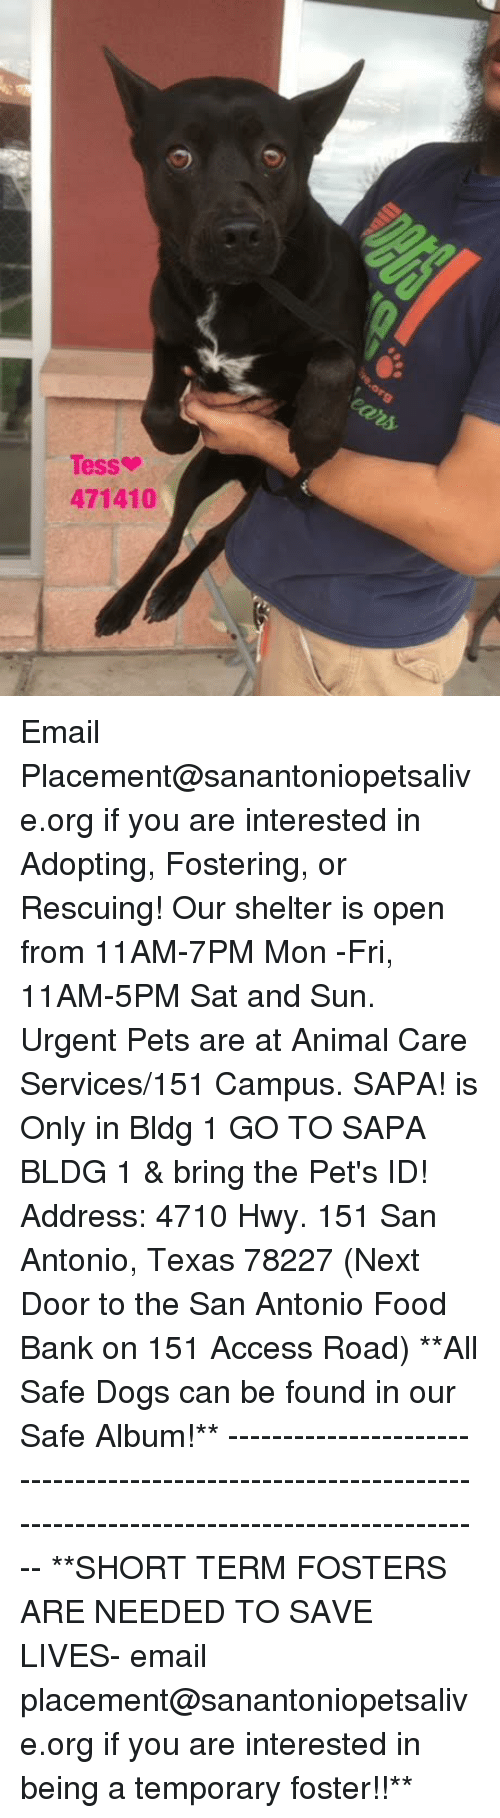 Dogs, Food, and Memes: Tess  471410 Email Placement@sanantoniopetsalive.org if you are interested in Adopting, Fostering, or Rescuing!  Our shelter is open from 11AM-7PM Mon -Fri, 11AM-5PM Sat and Sun.  Urgent Pets are at Animal Care Services/151 Campus. SAPA! is Only in Bldg 1 GO TO SAPA BLDG 1 & bring the Pet's ID! Address: 4710 Hwy. 151 San Antonio, Texas 78227 (Next Door to the San Antonio Food Bank on 151 Access Road)  **All Safe Dogs can be found in our Safe Album!** ---------------------------------------------------------------------------------------------------------- **SHORT TERM FOSTERS ARE NEEDED TO SAVE LIVES- email placement@sanantoniopetsalive.org if you are interested in being a temporary foster!!**